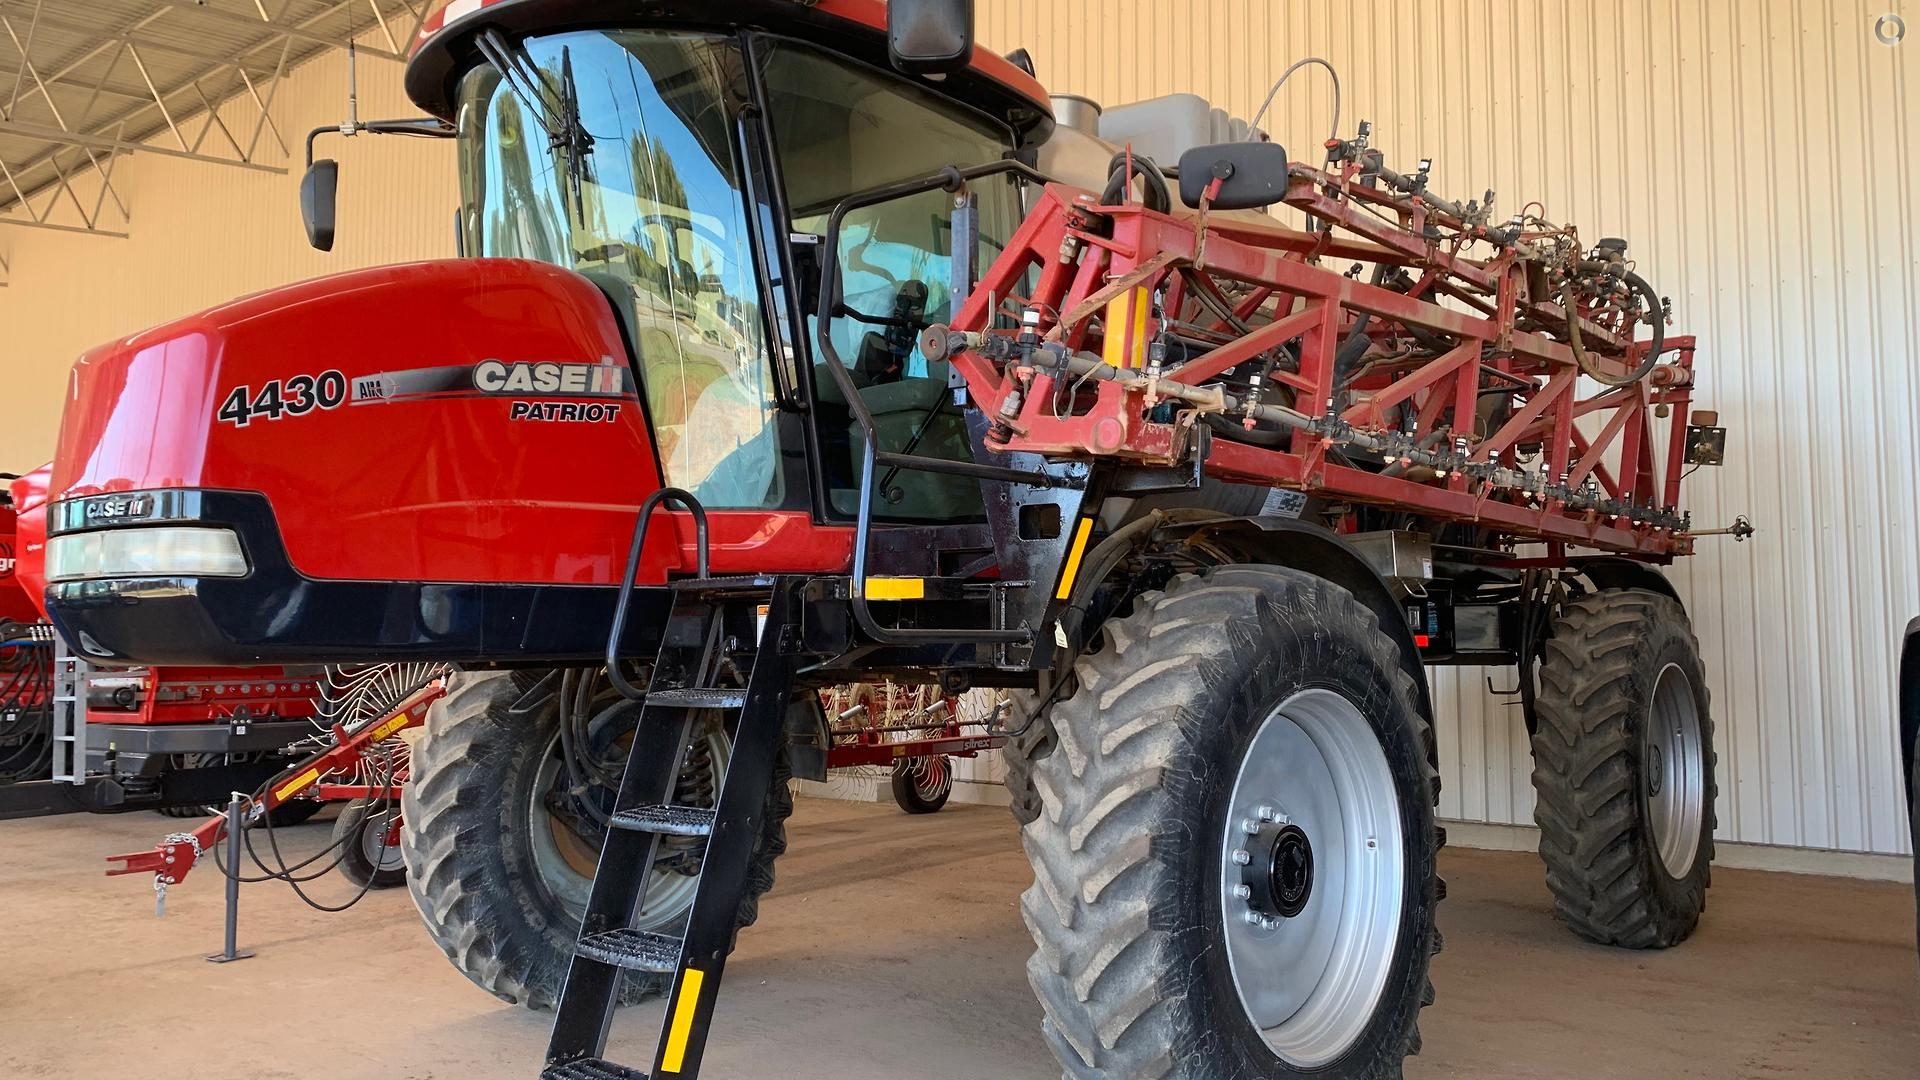 2012 CASE Patriot 4430 Sprayer